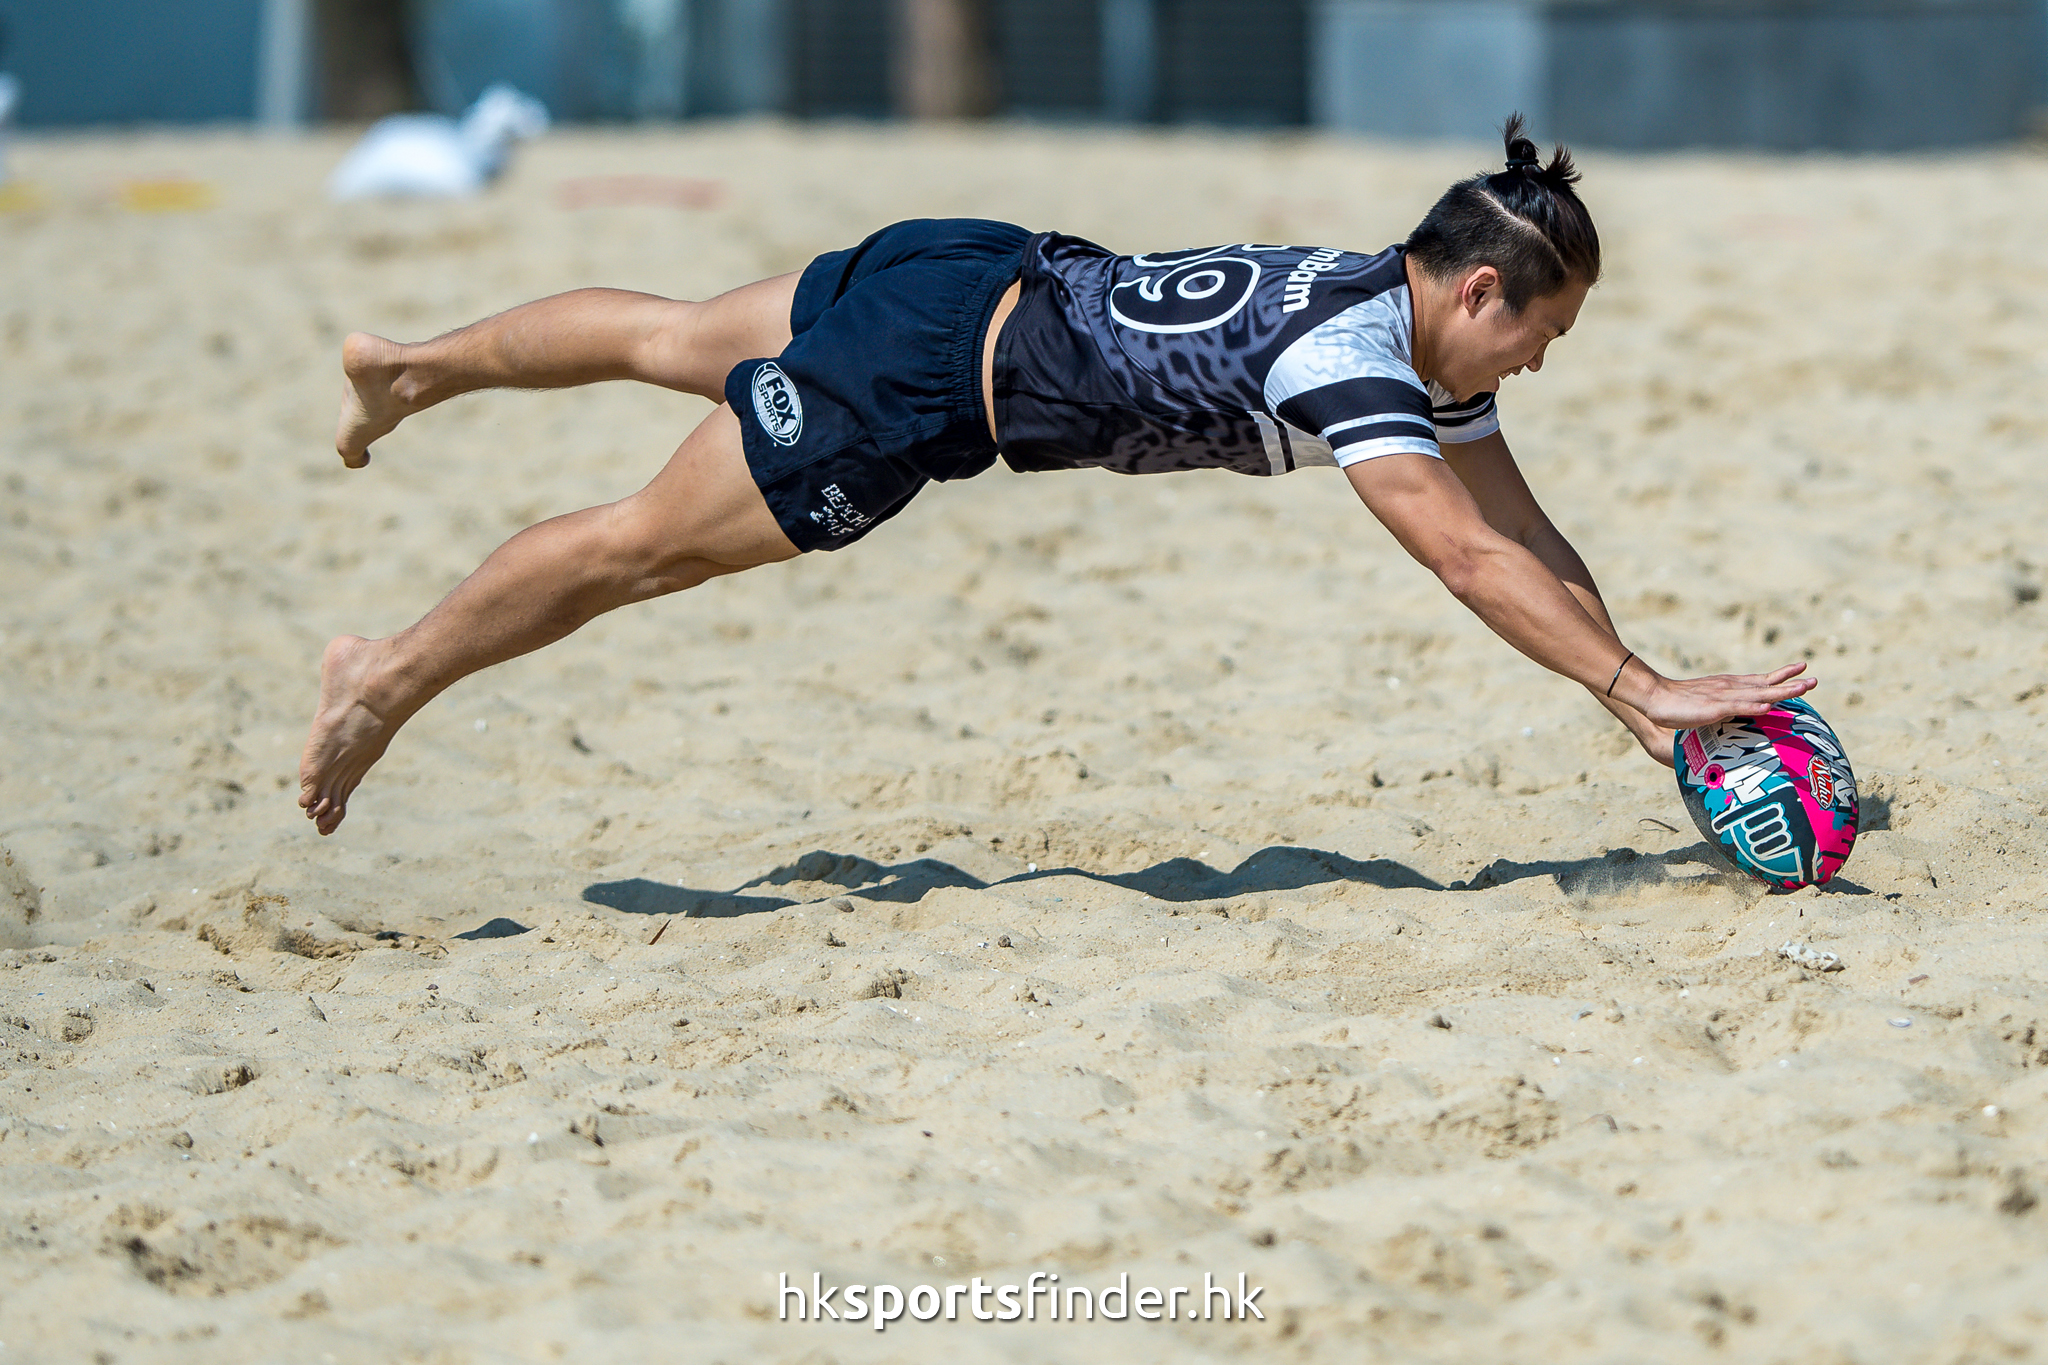 Her_GoldCoastTertiaryBeachRugby_16-11-12 12.48.13_000761.jpg